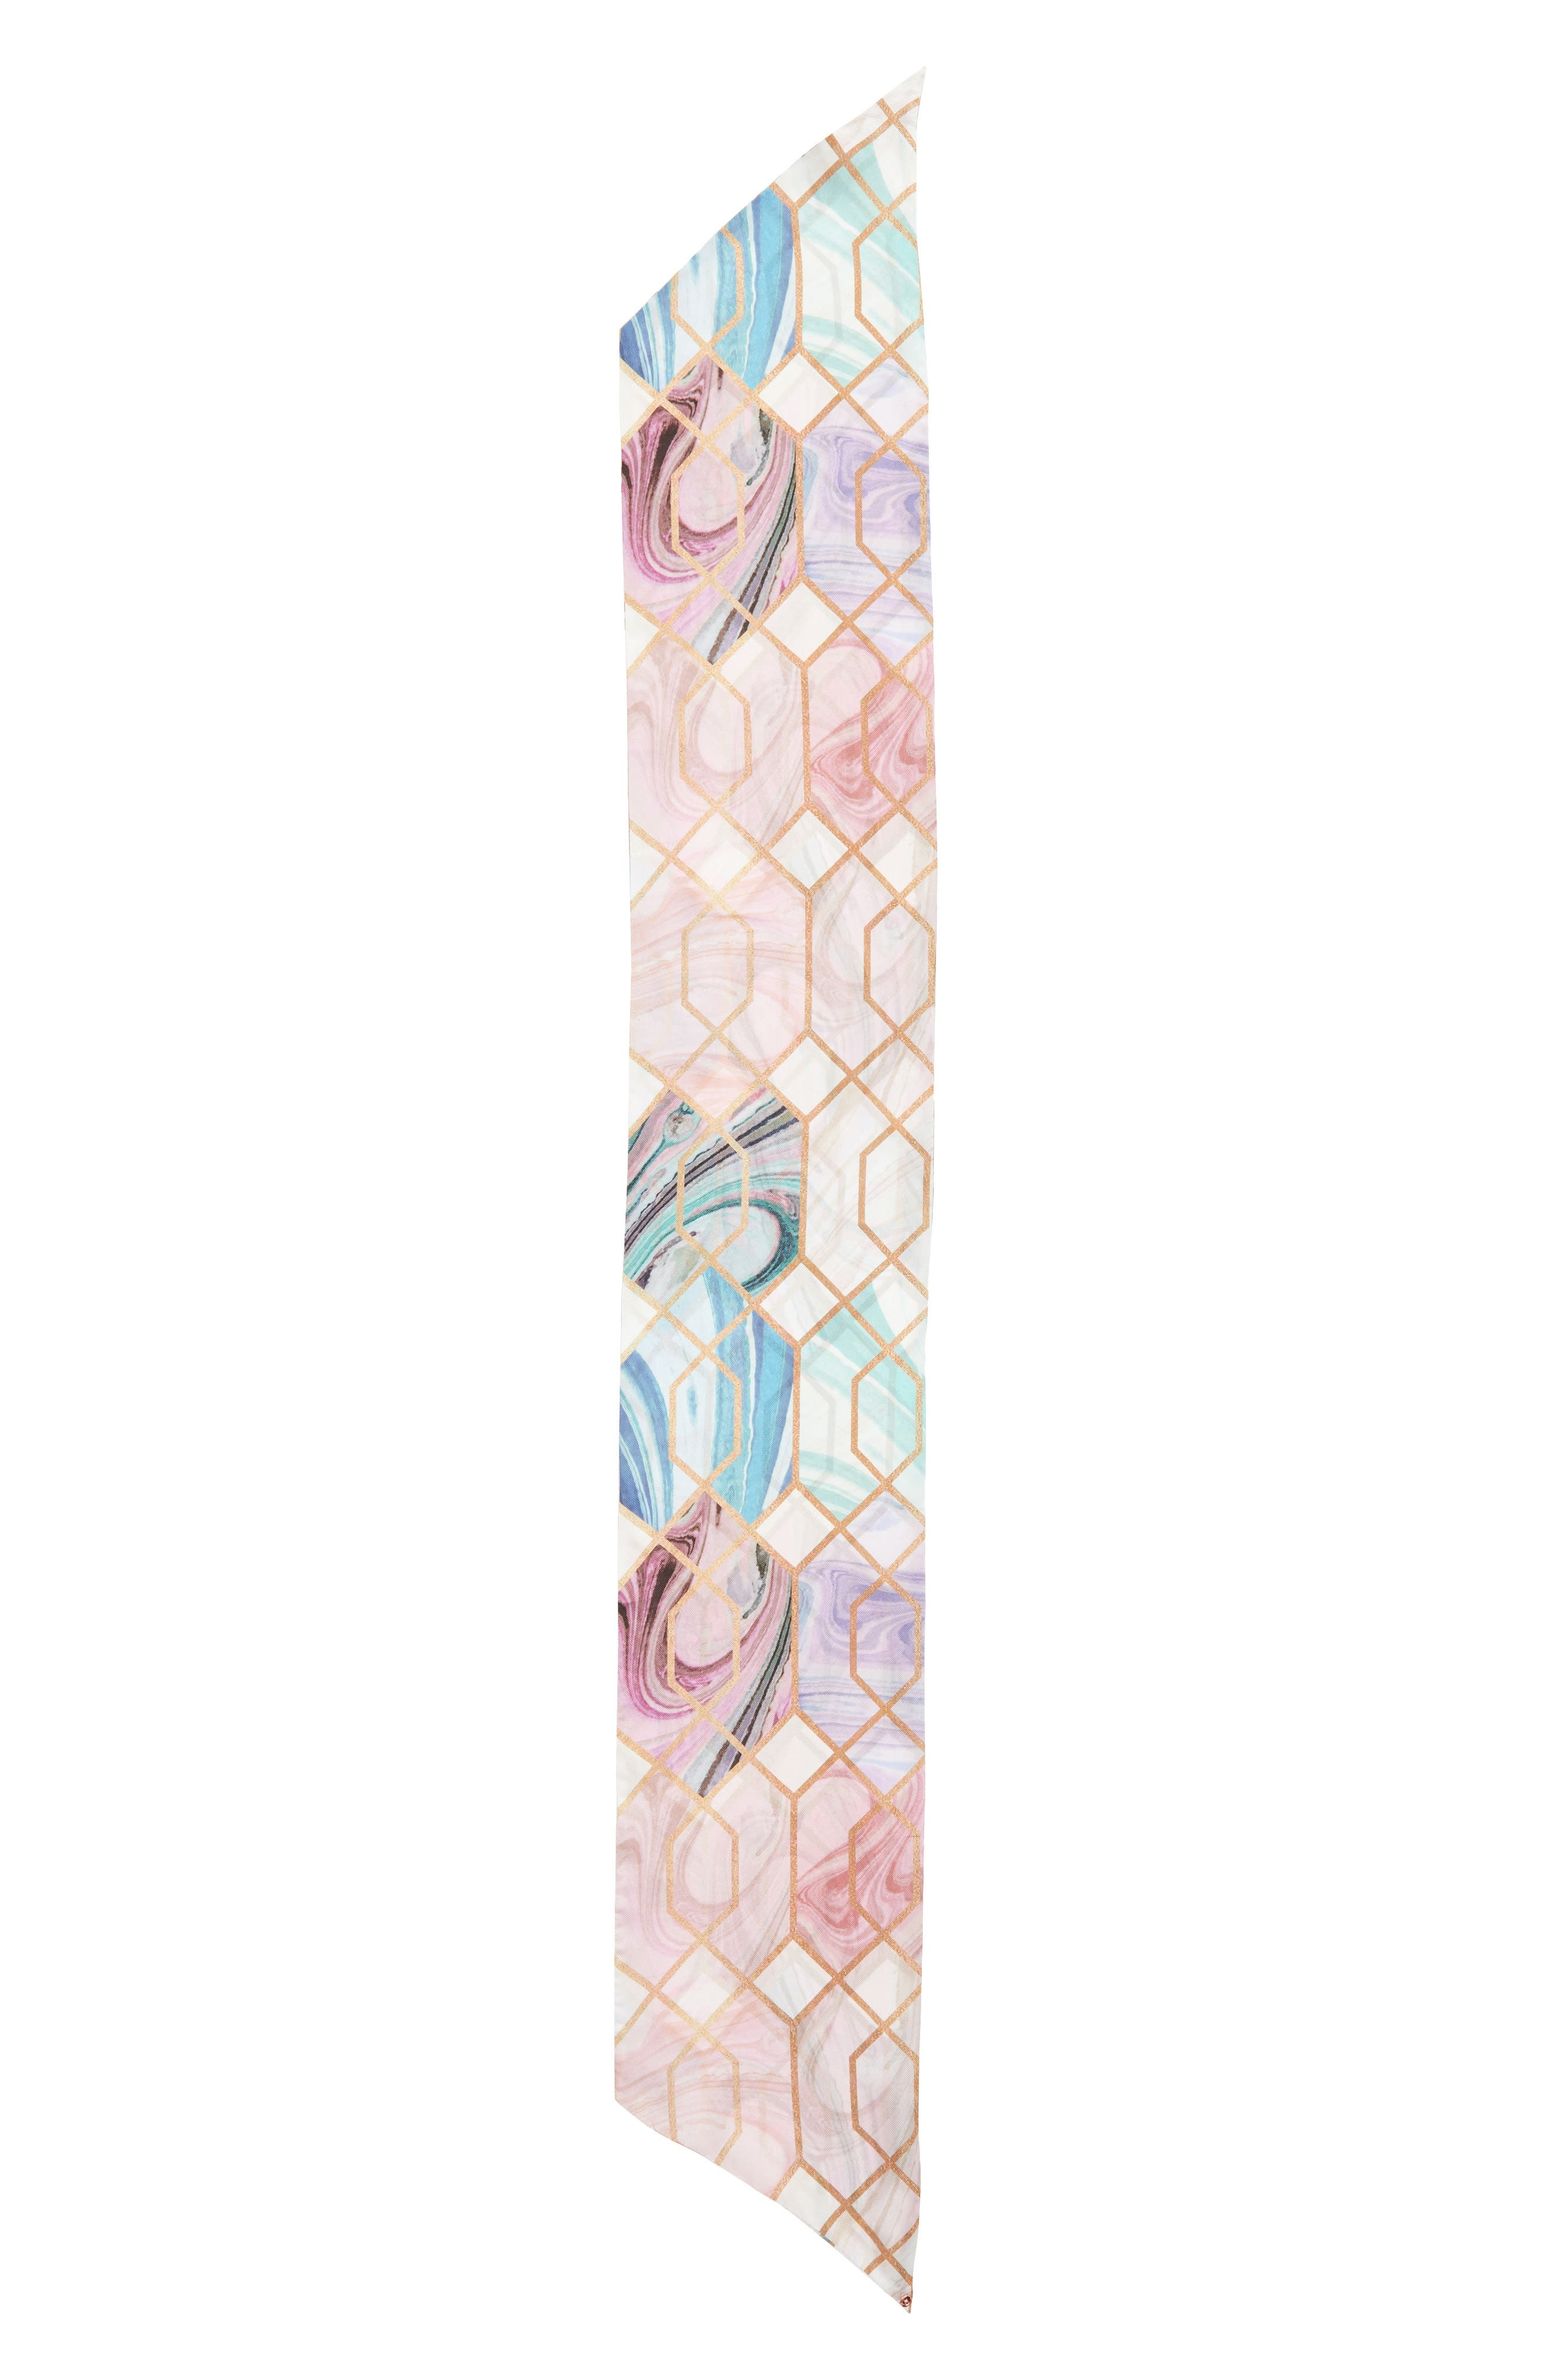 Adeelee - Sea of Clouds Silk Scarf,                             Alternate thumbnail 3, color,                             White